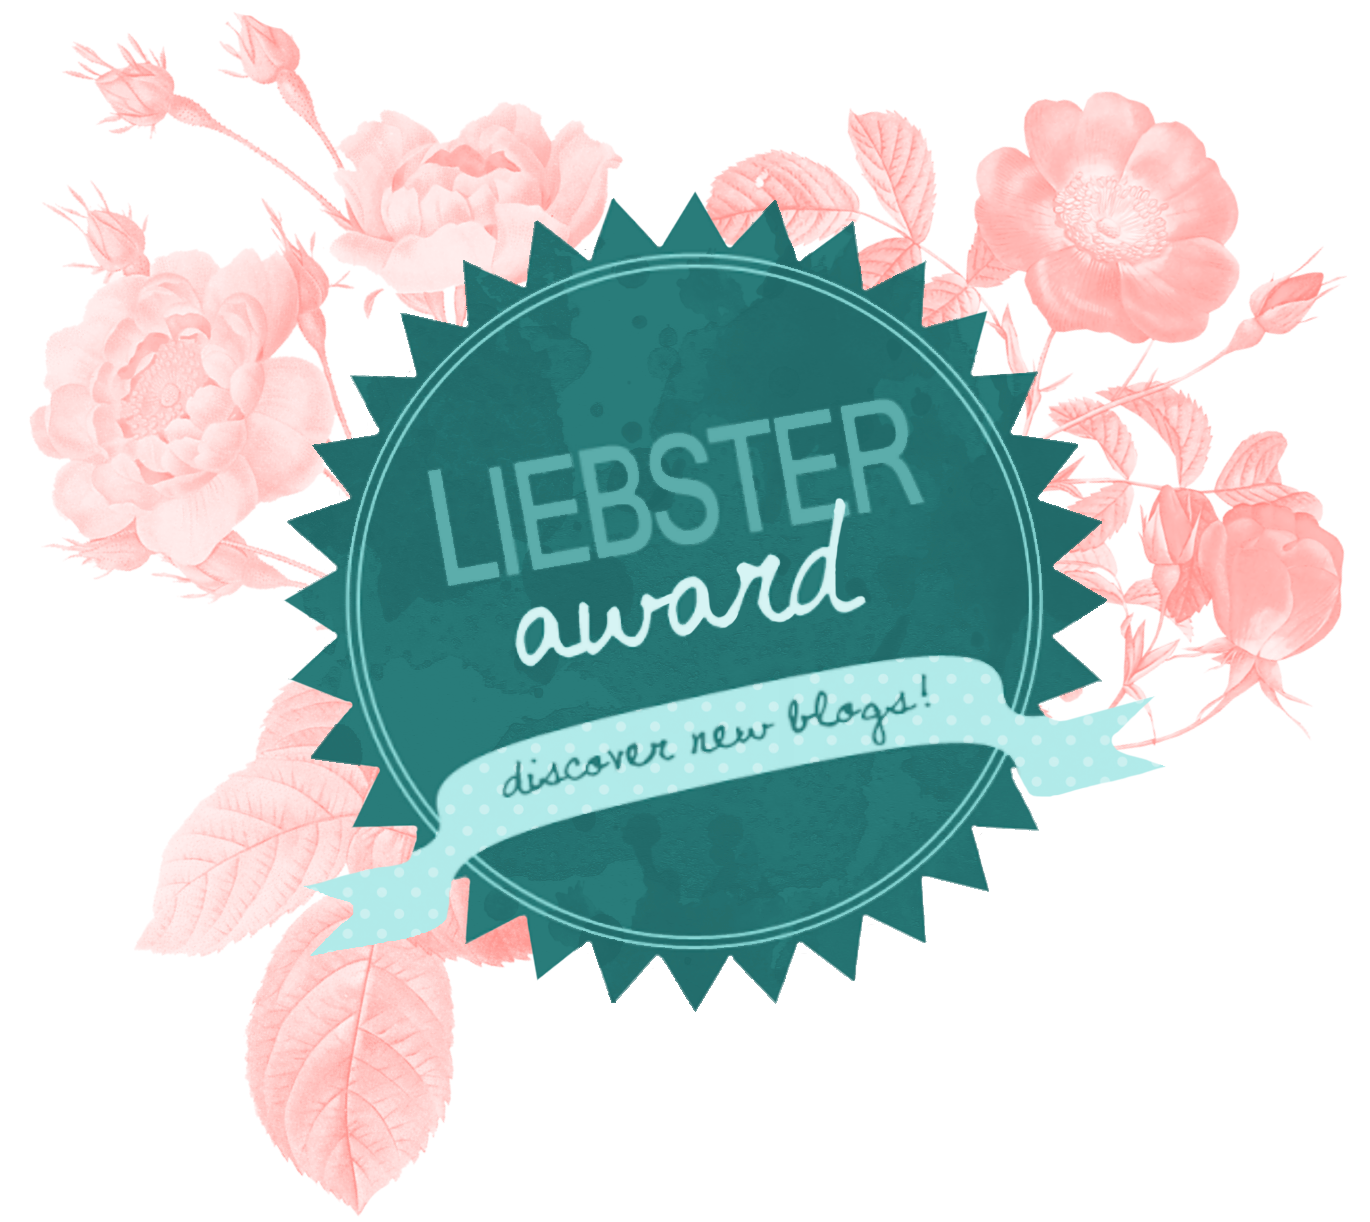 Liebster Award | Bloggers nominating other bloggers & giving them the recognition they deserve!